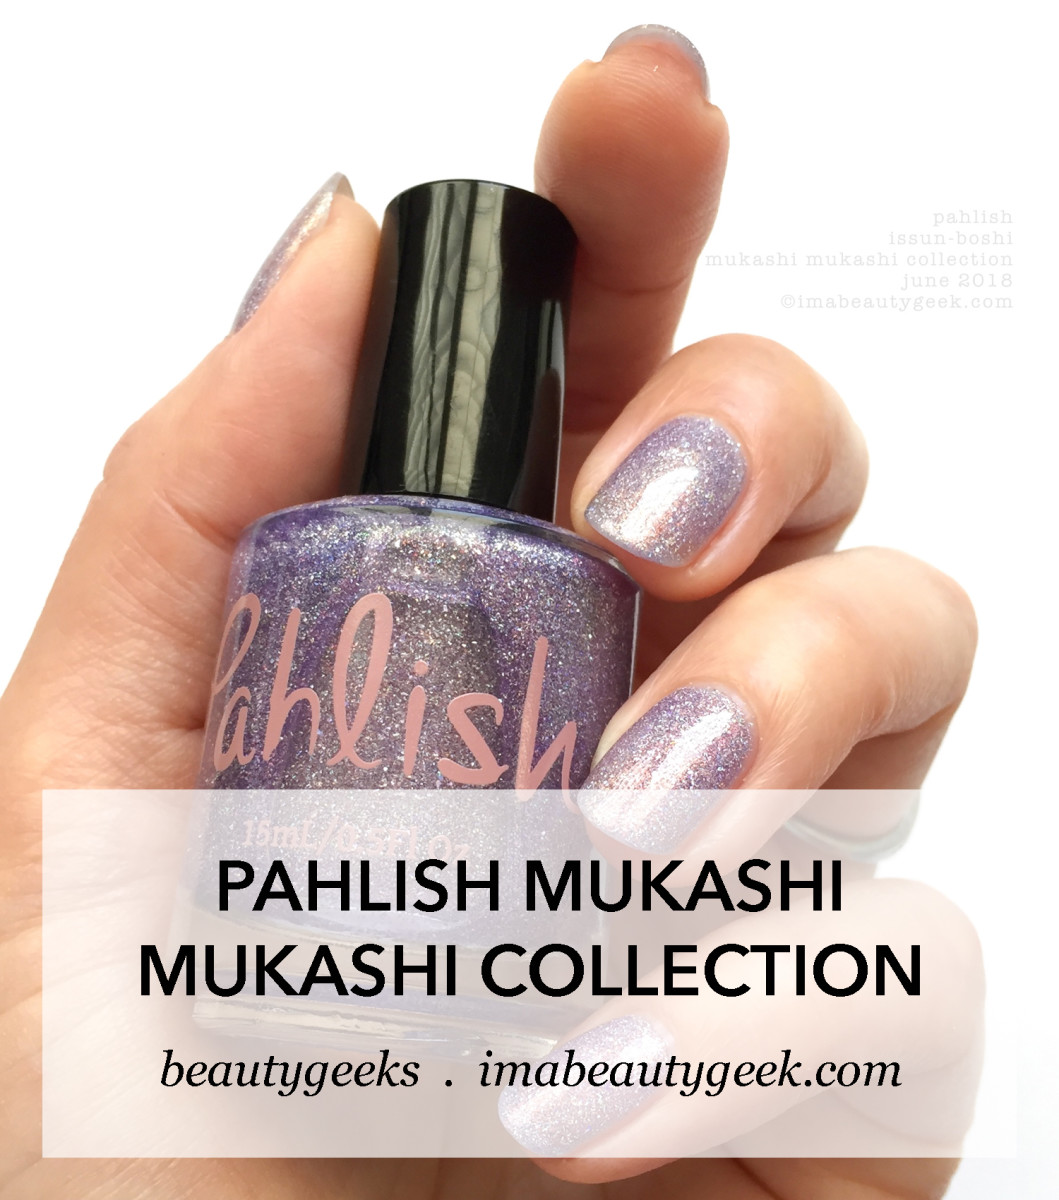 Pahlish Mukashi Mukashi Collection Swatches June 2018 Once Upon a Time